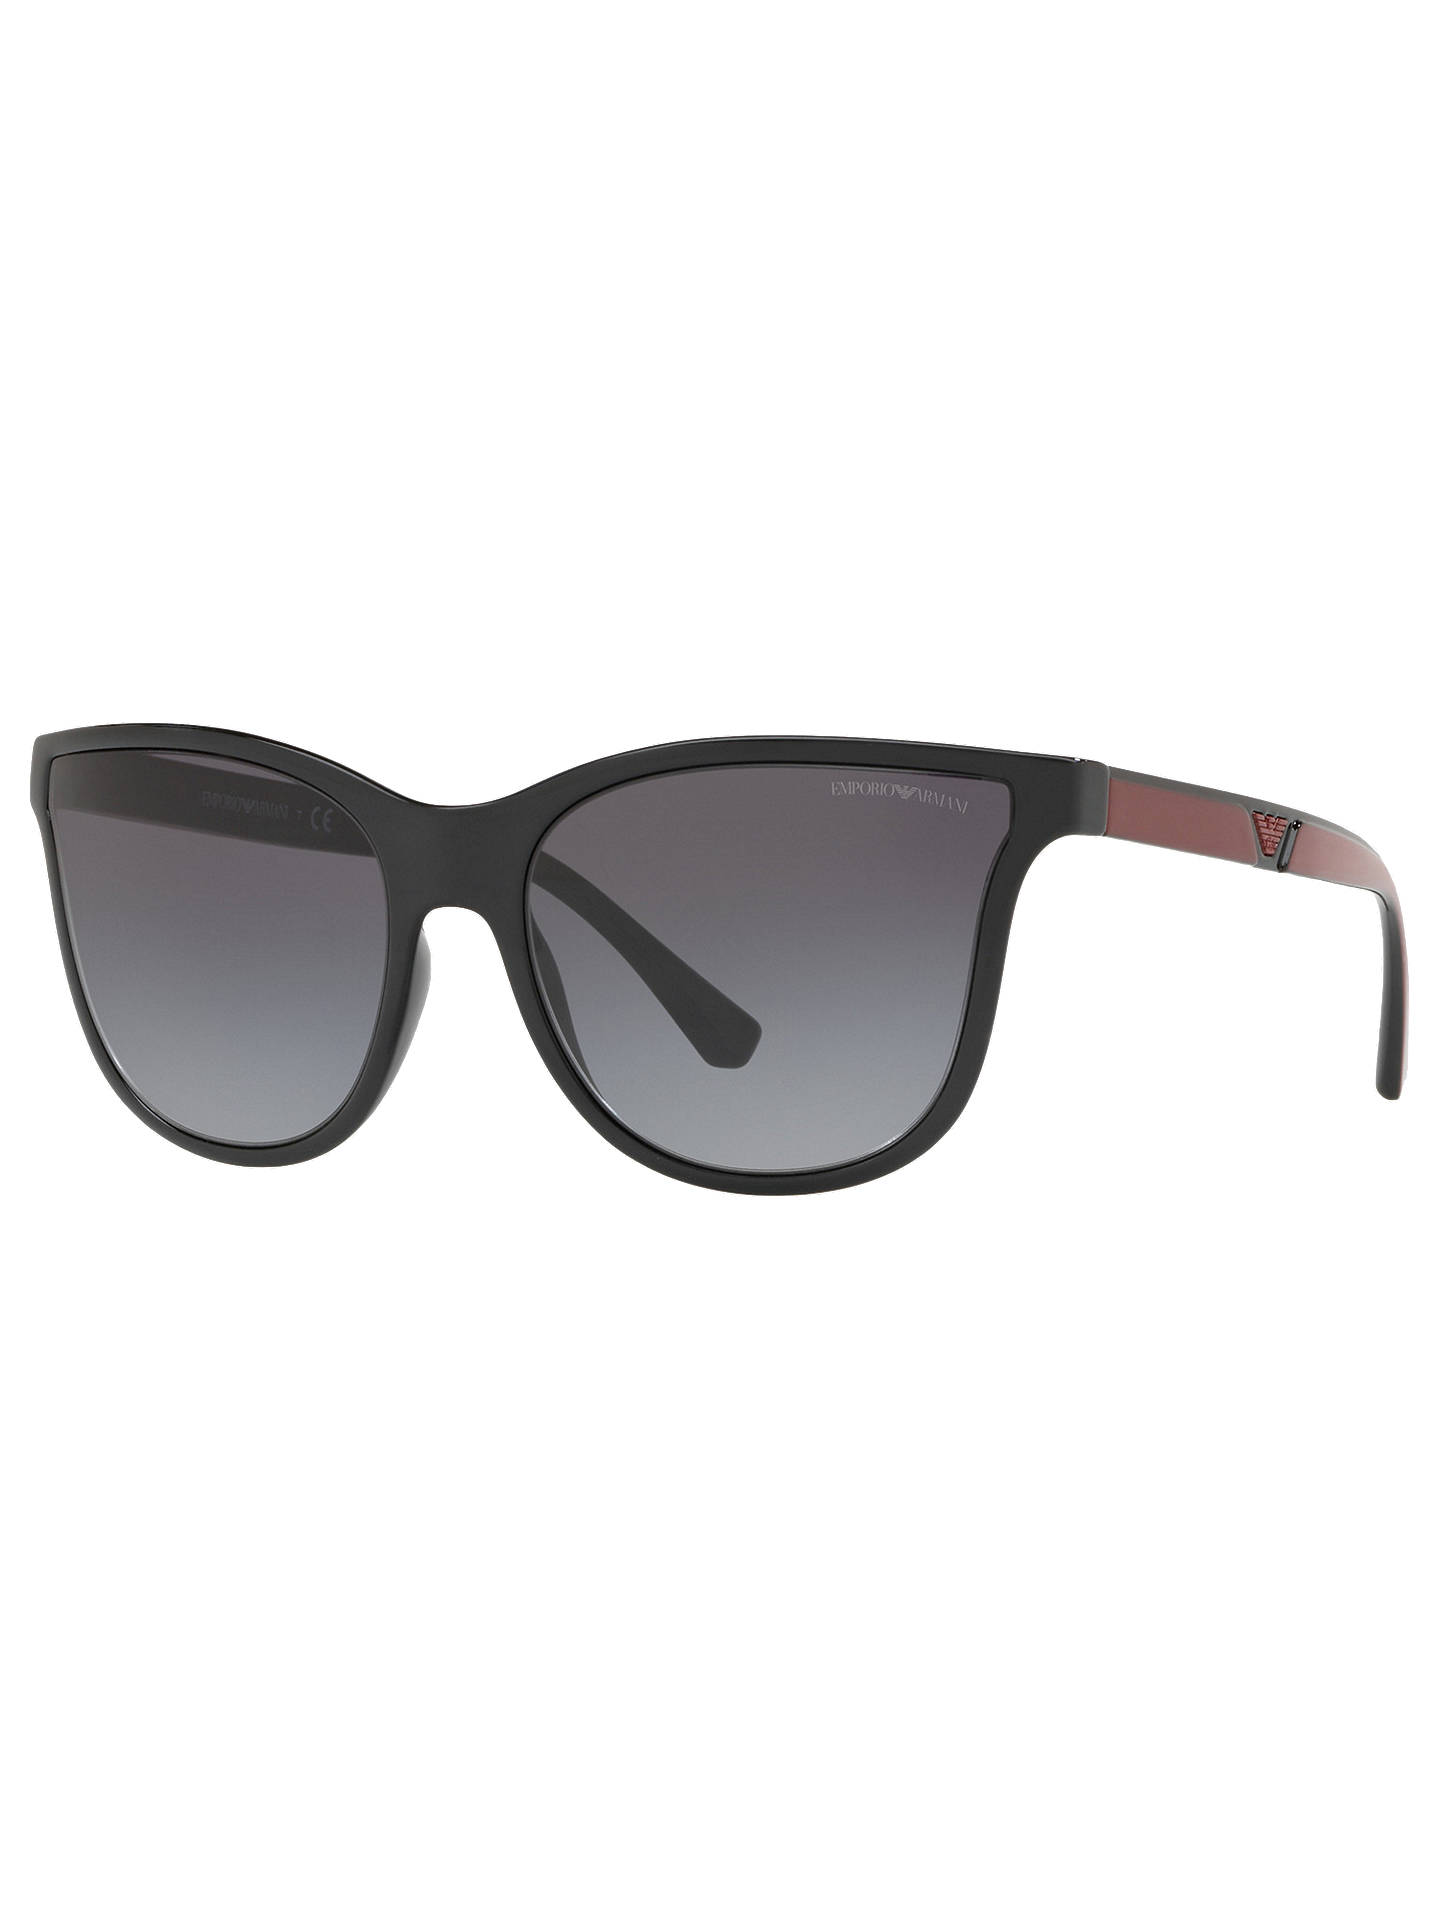 55638d8b482 Emporio Armani EA4112 Women s Butterfly Sunglasses at John Lewis ...